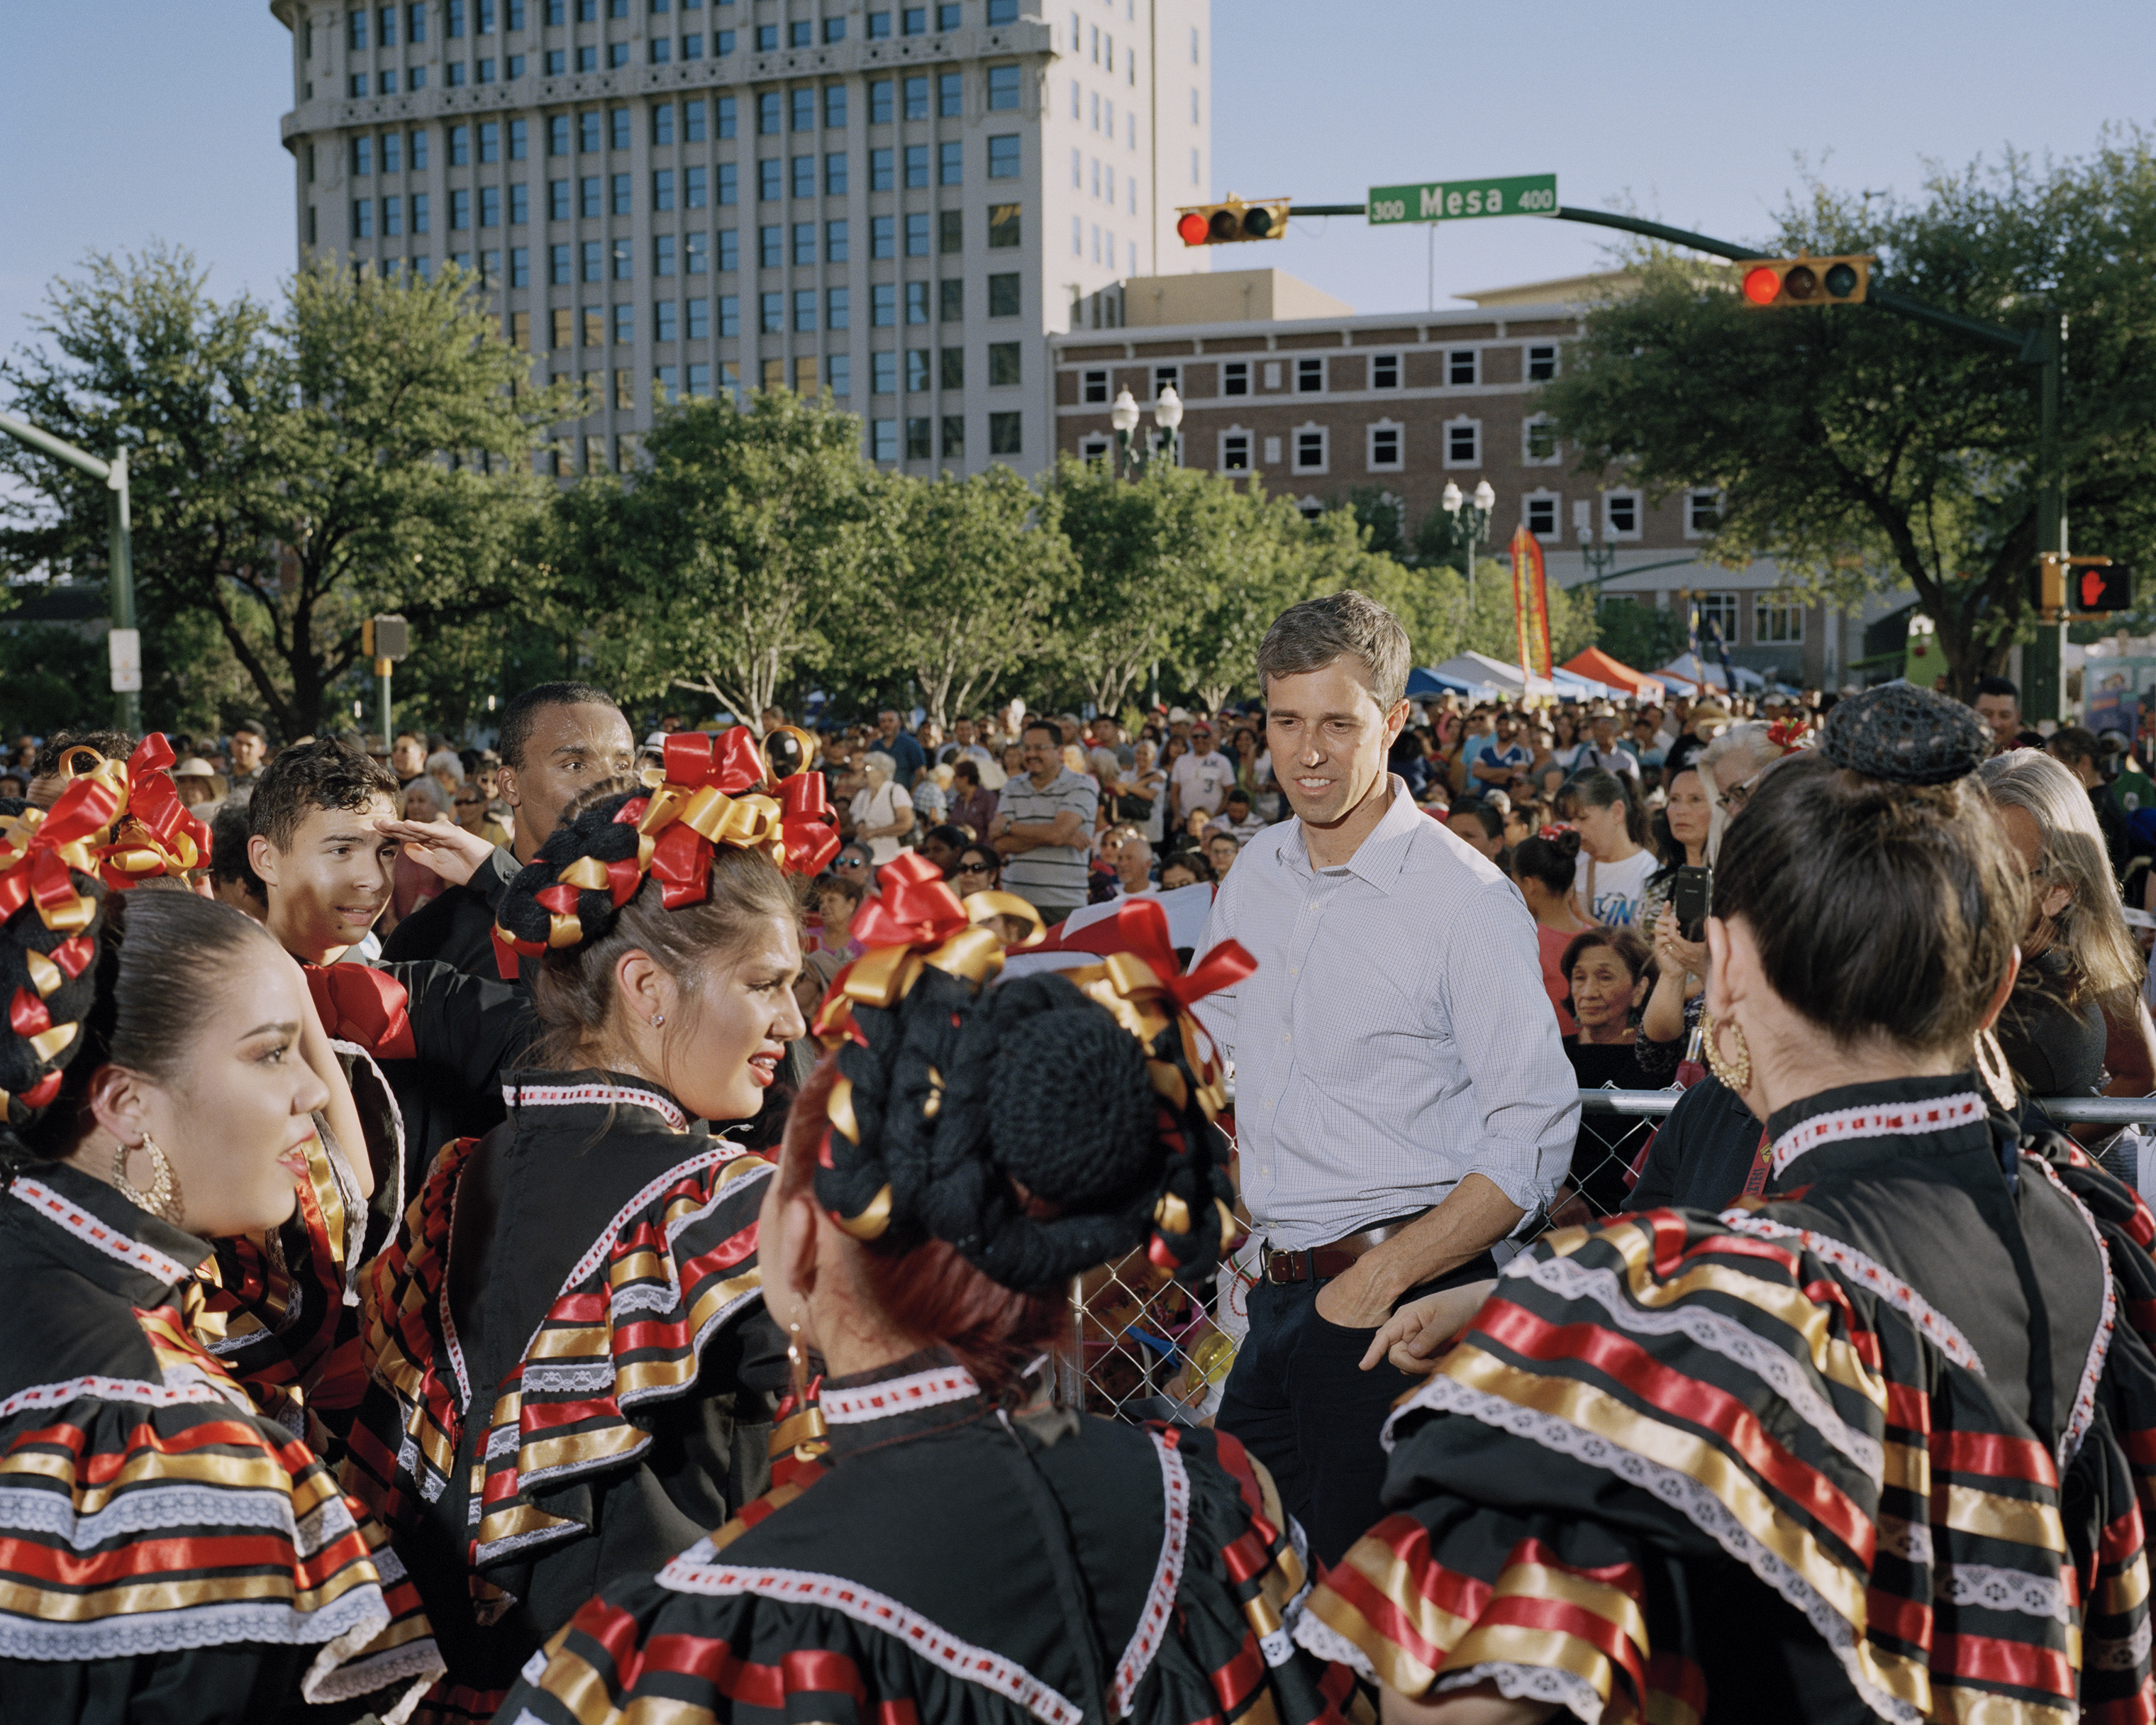 O'Rourke with performers at the Mariachi Loco Music Festival in El Paso.